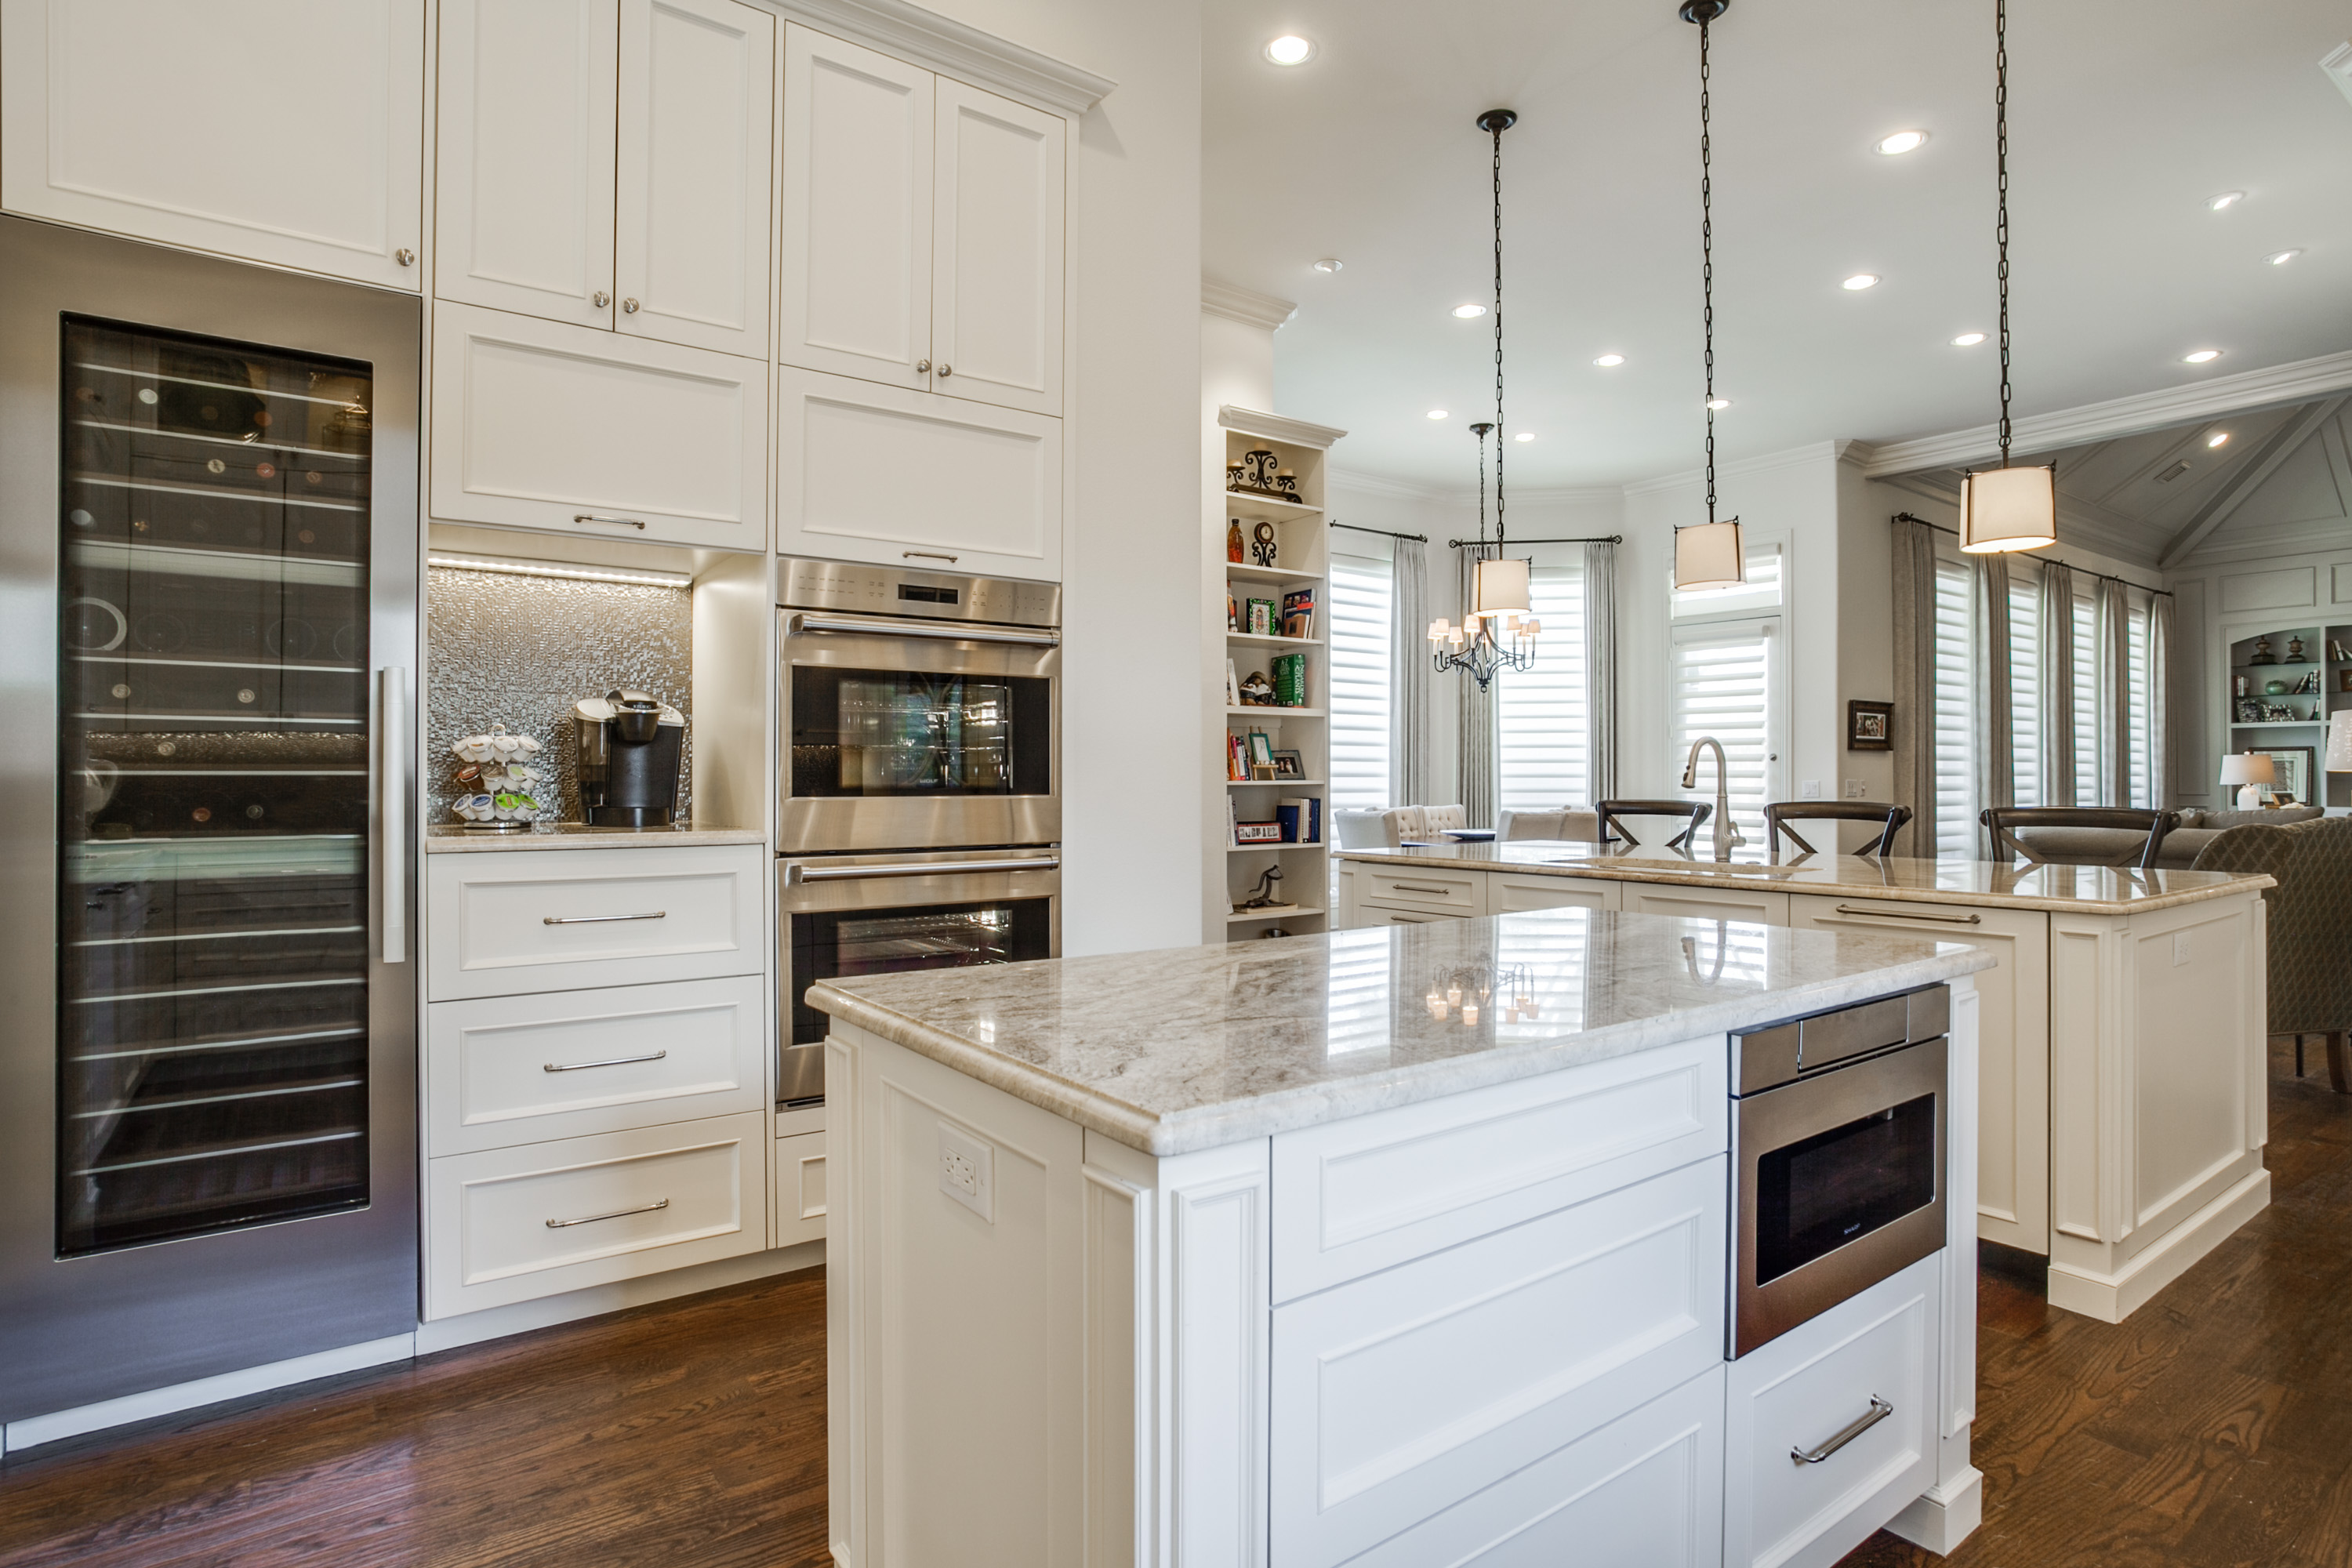 kitchen remodel dallas home depot cabinets sale j williams construction remodeling inc our work